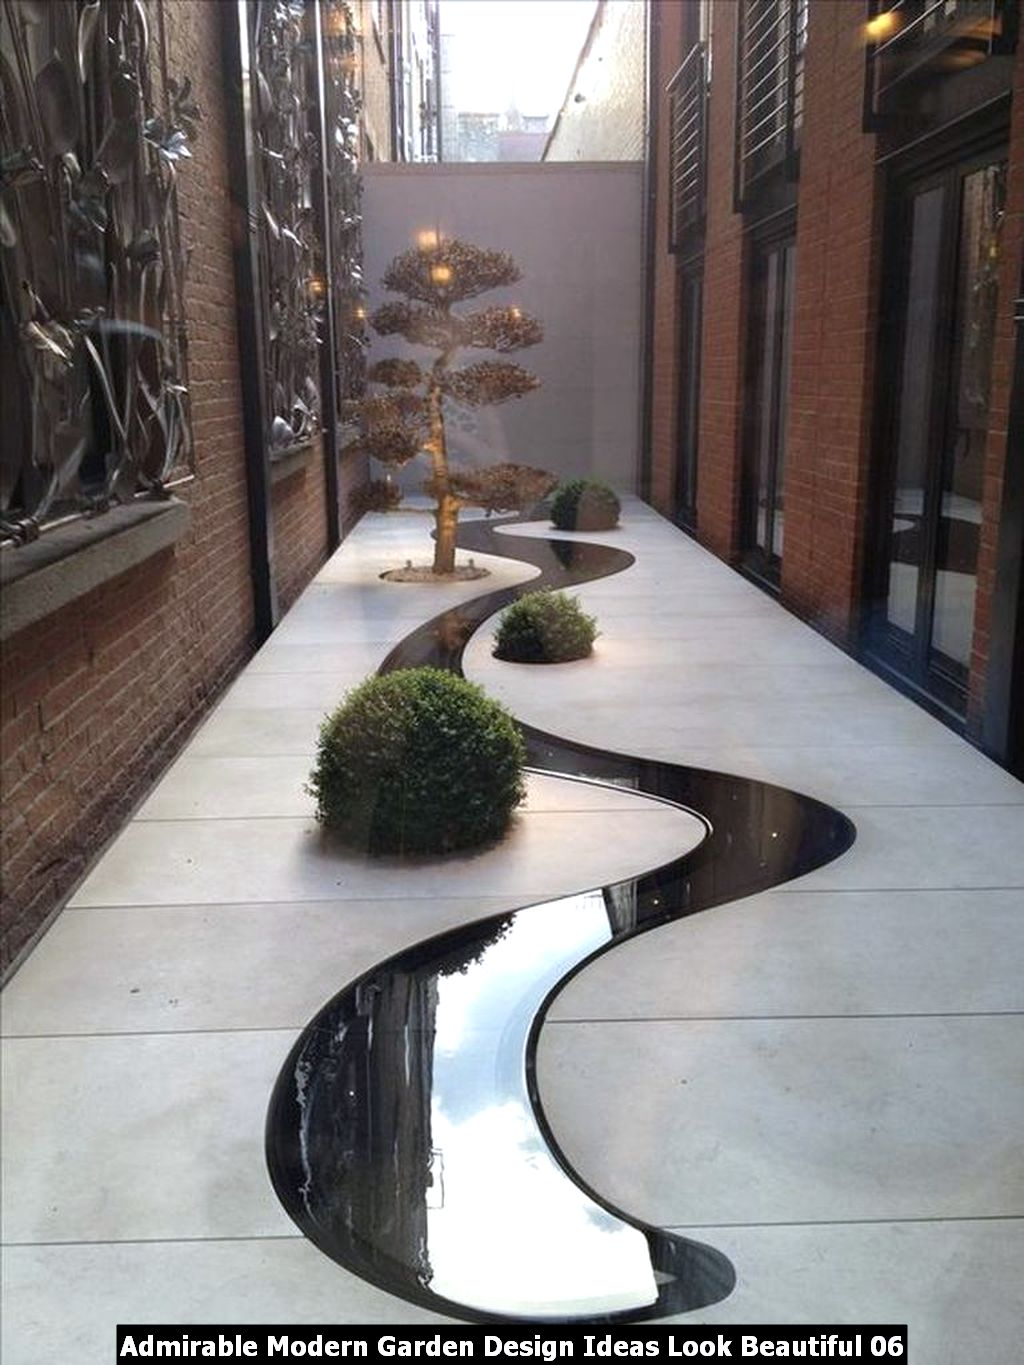 Admirable Modern Garden Design Ideas Look Beautiful 06